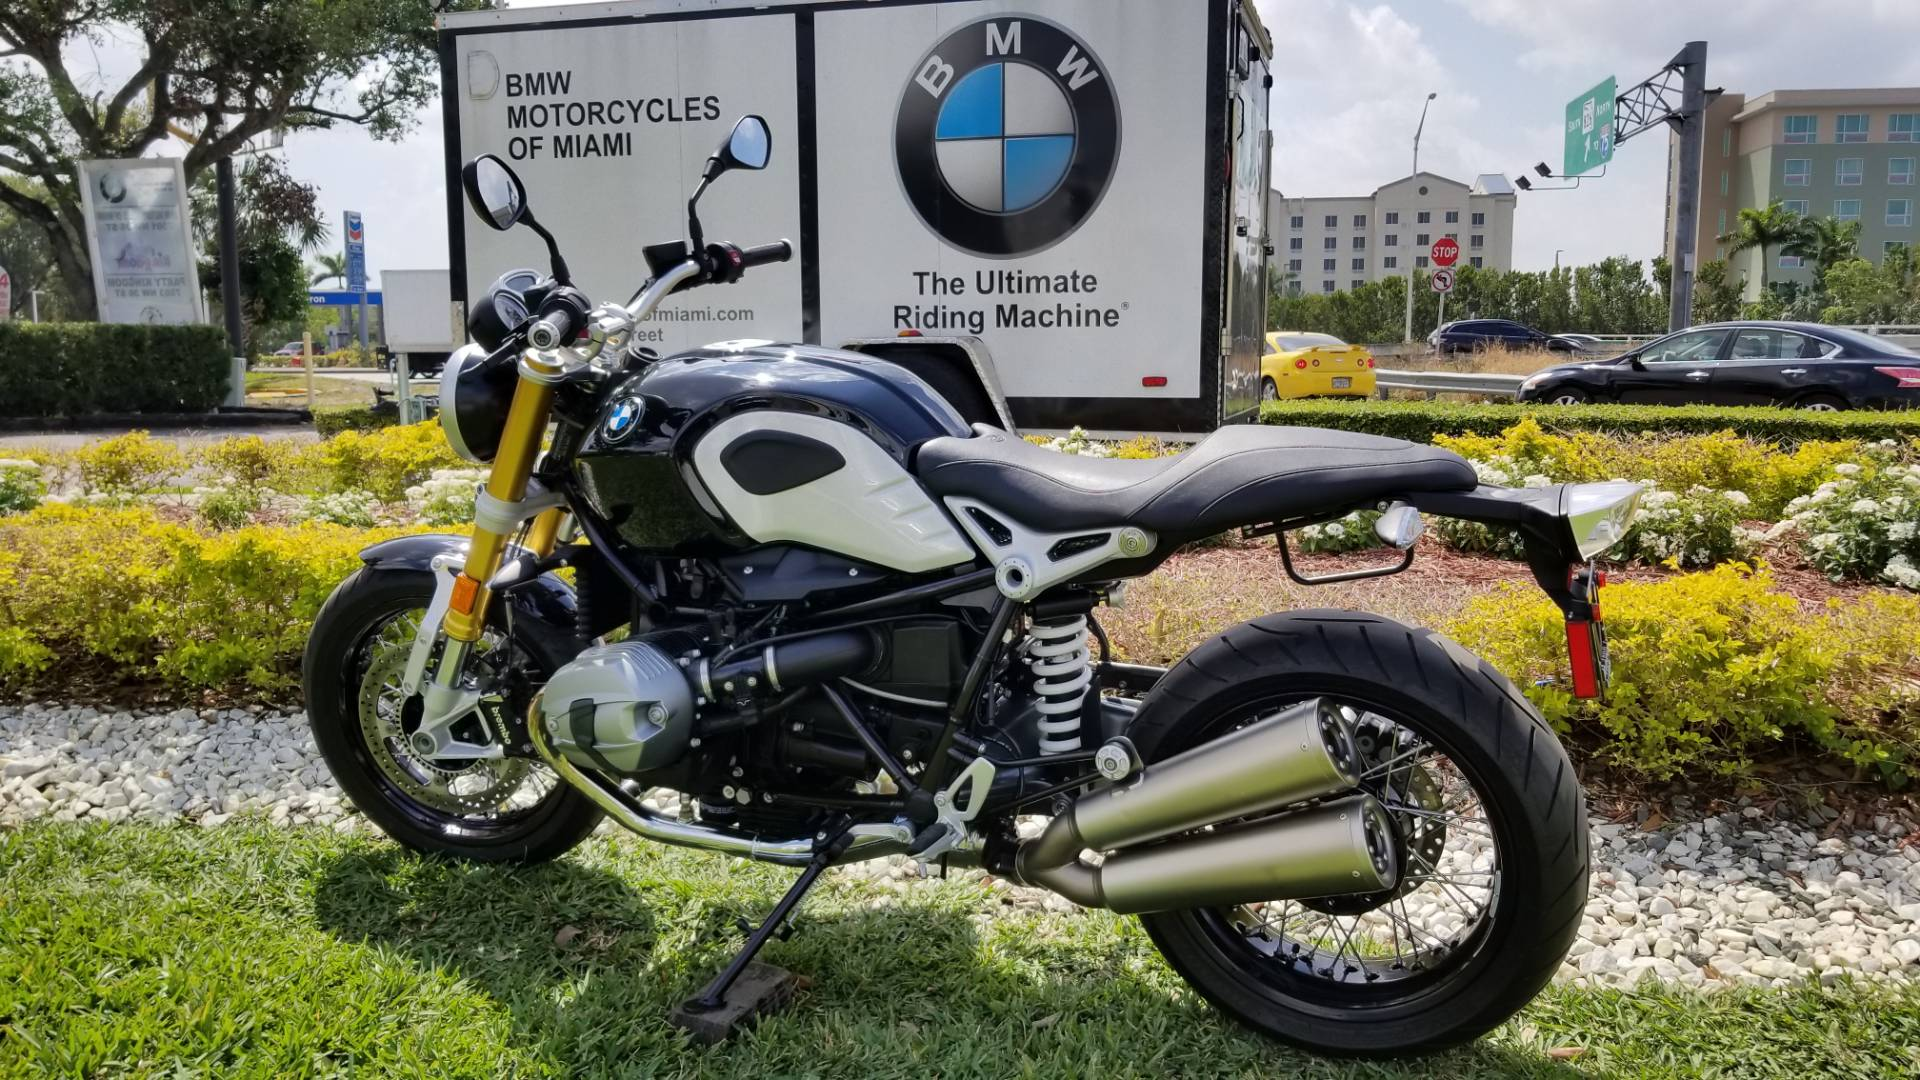 Used 2015 BMW R nine T For Sale, Pre Owned BMW R nineT For Sale, Pre-Owned BMW Motorcycle RnineT, BMW Motorcycle, nineT, Heritage, BMW